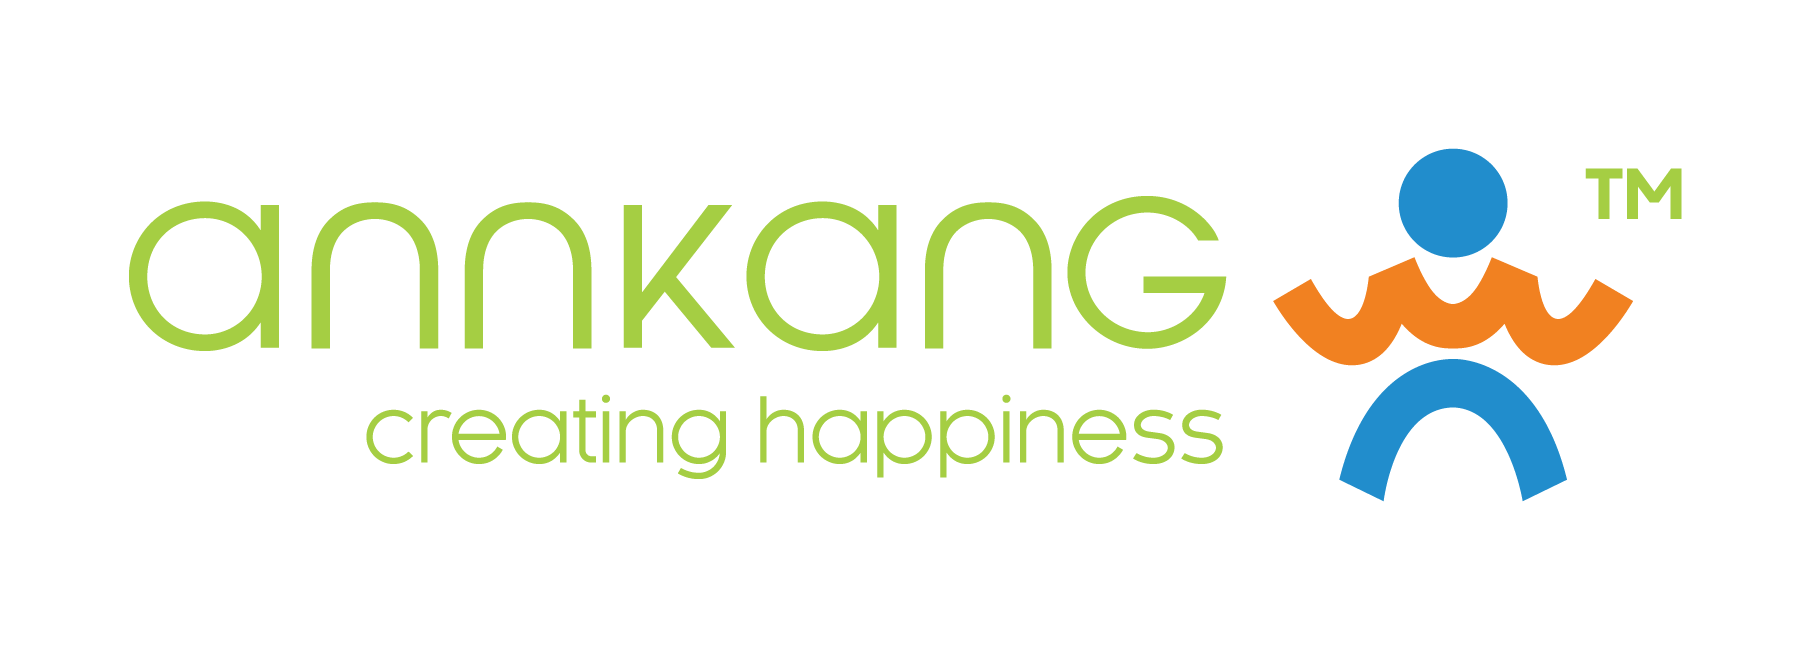 Annkang Wellness